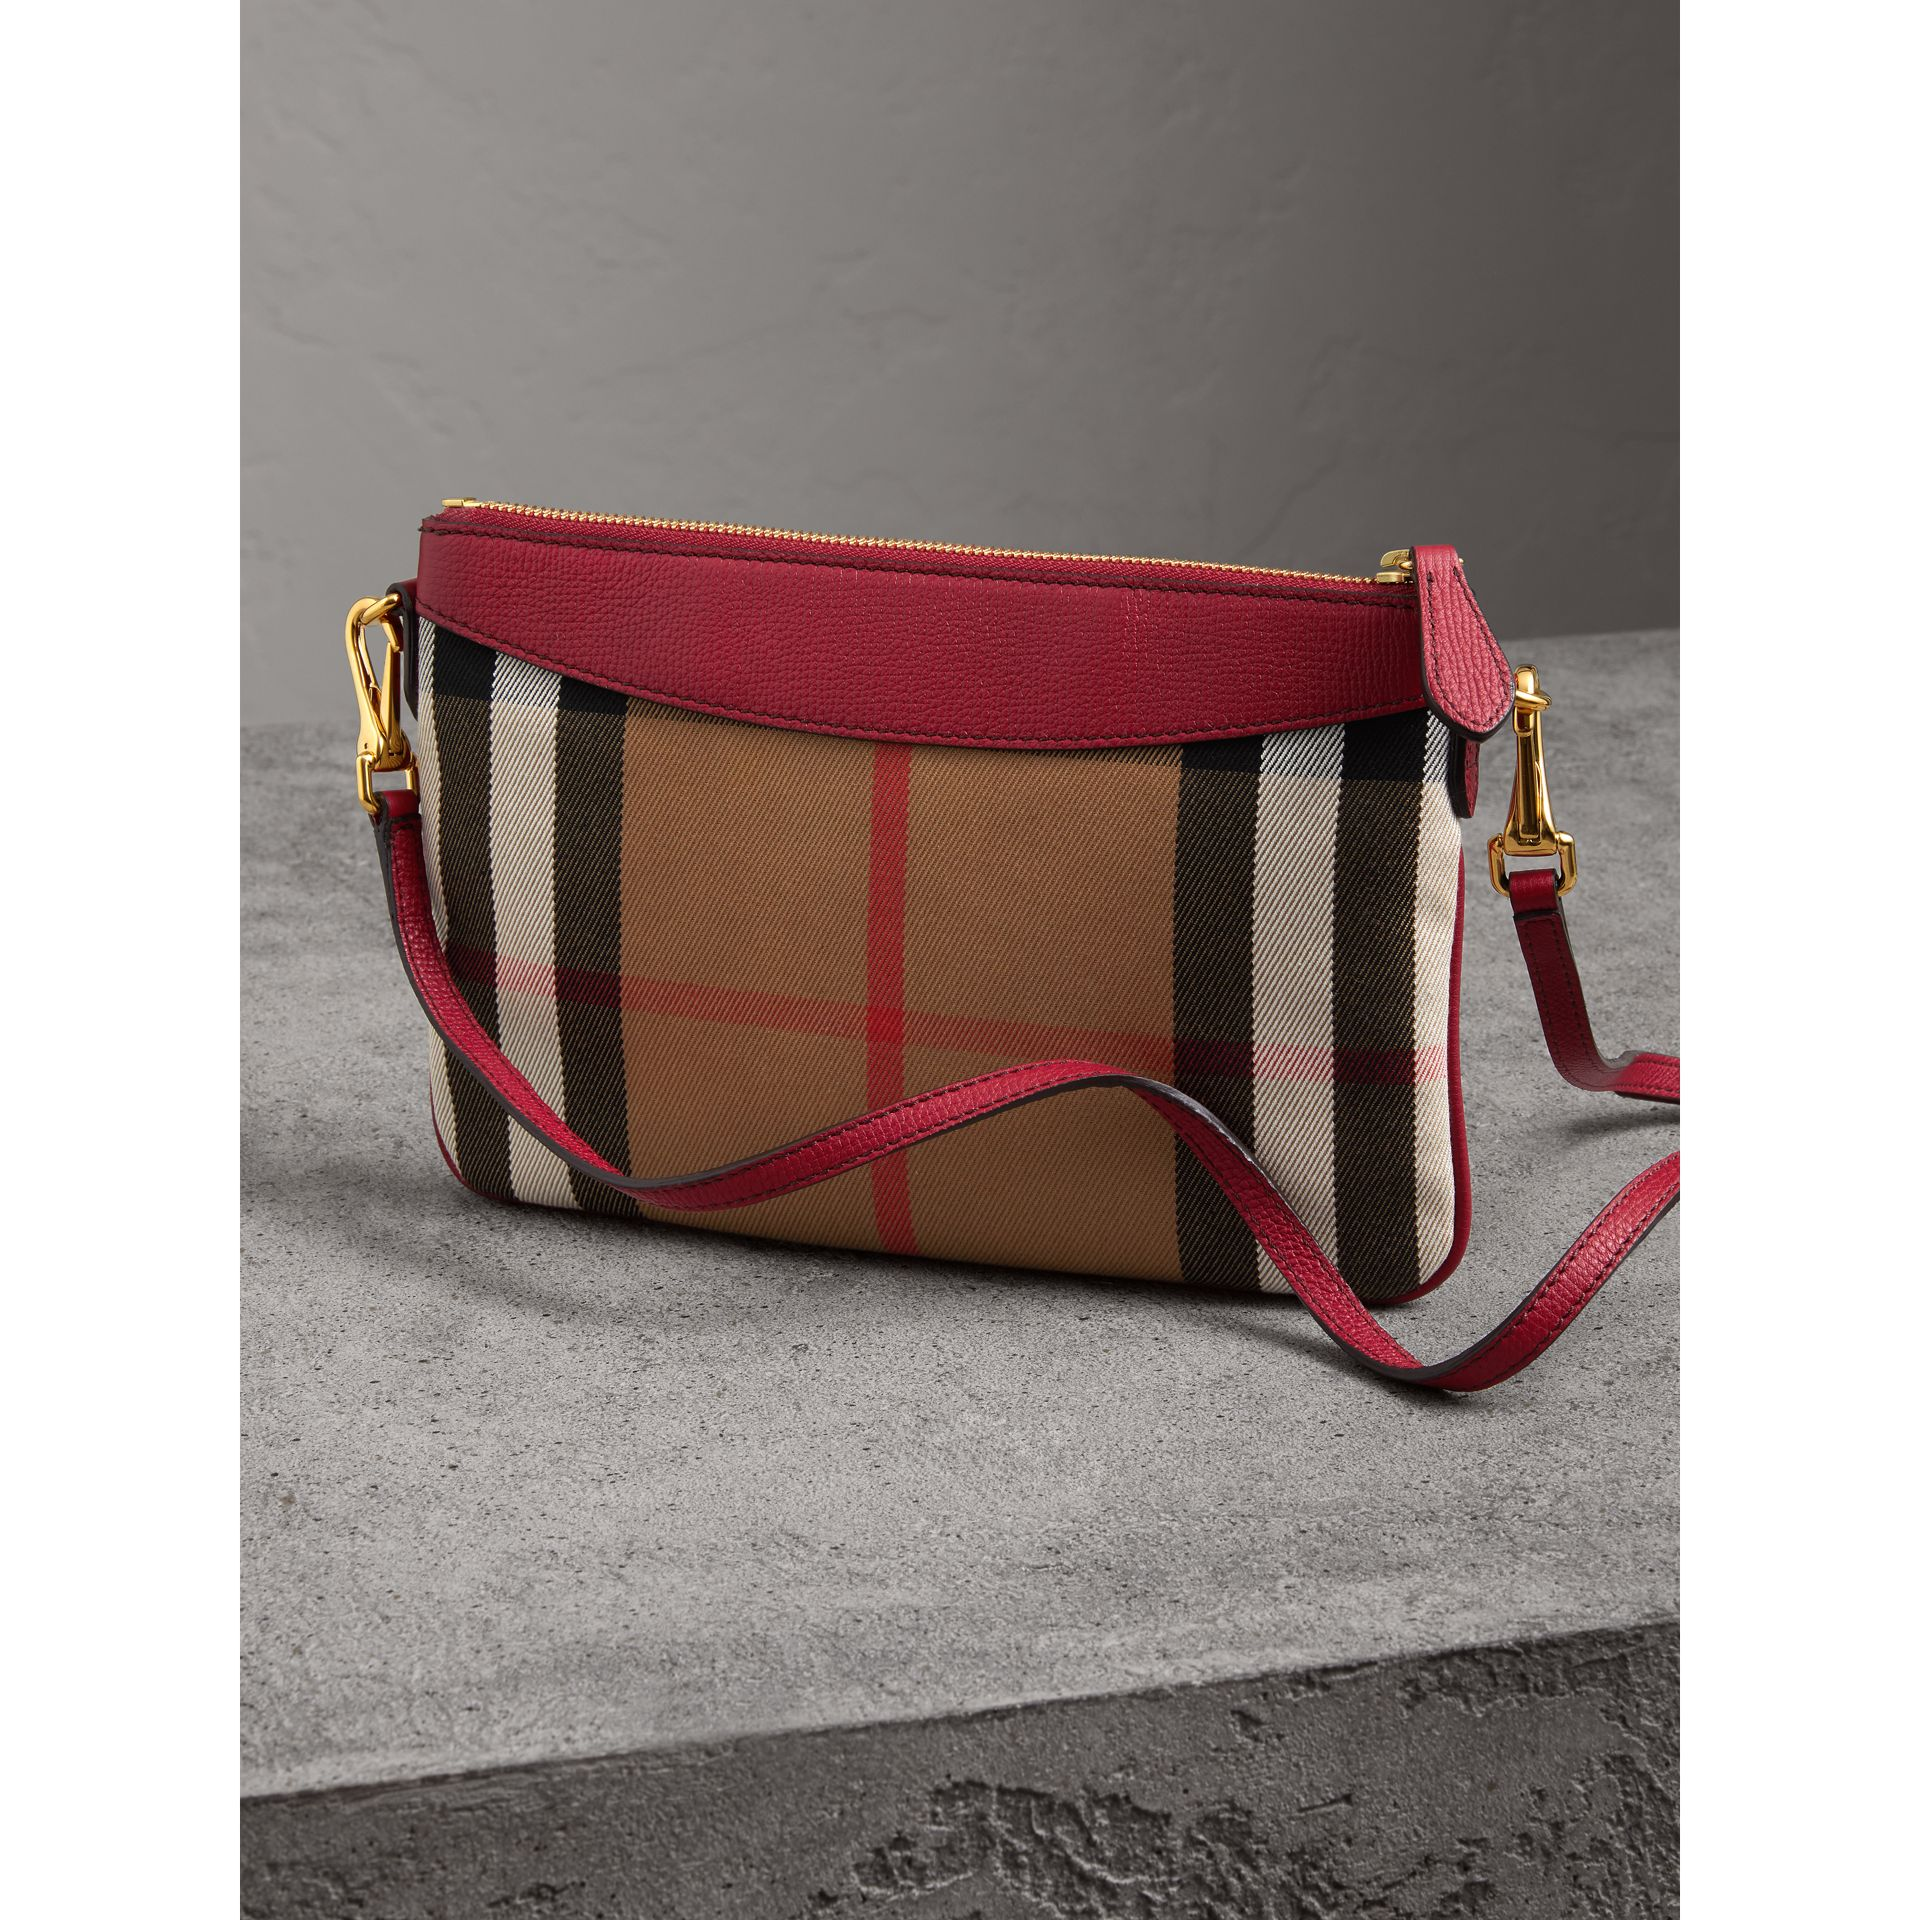 House Check and Leather Clutch Bag in Military Red - Women | Burberry Australia - gallery image 3